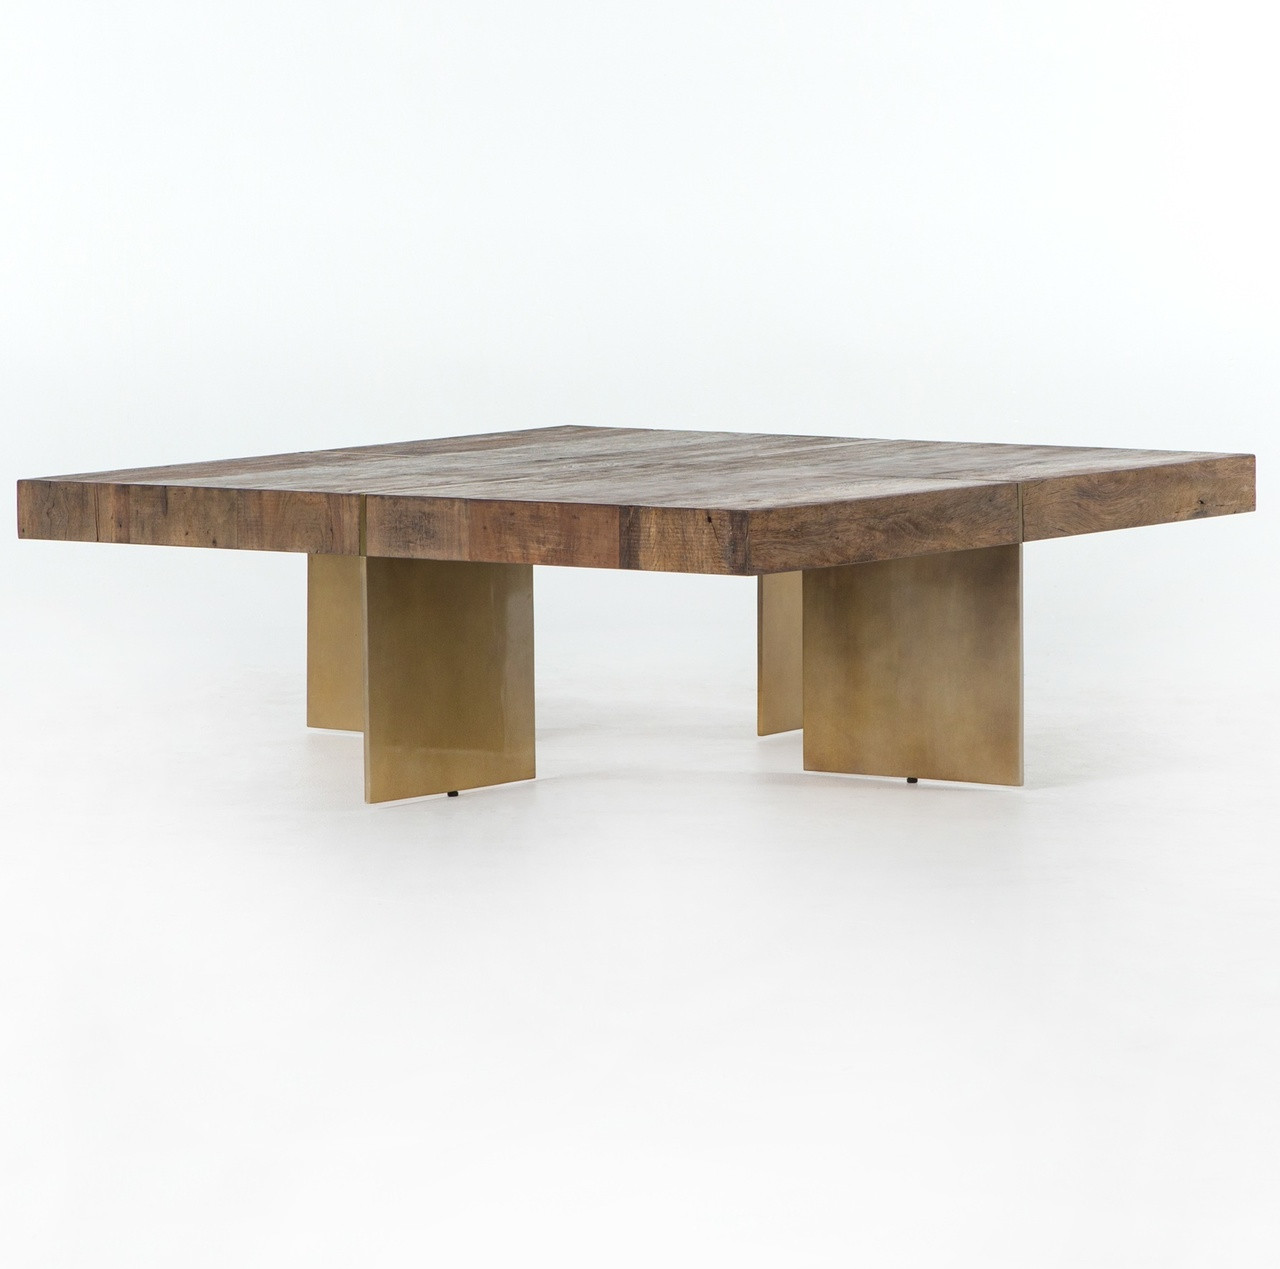 40 Metal Square Coffee Tables: Alec Reclaimed Wood Square Coffee Table With Brass Legs